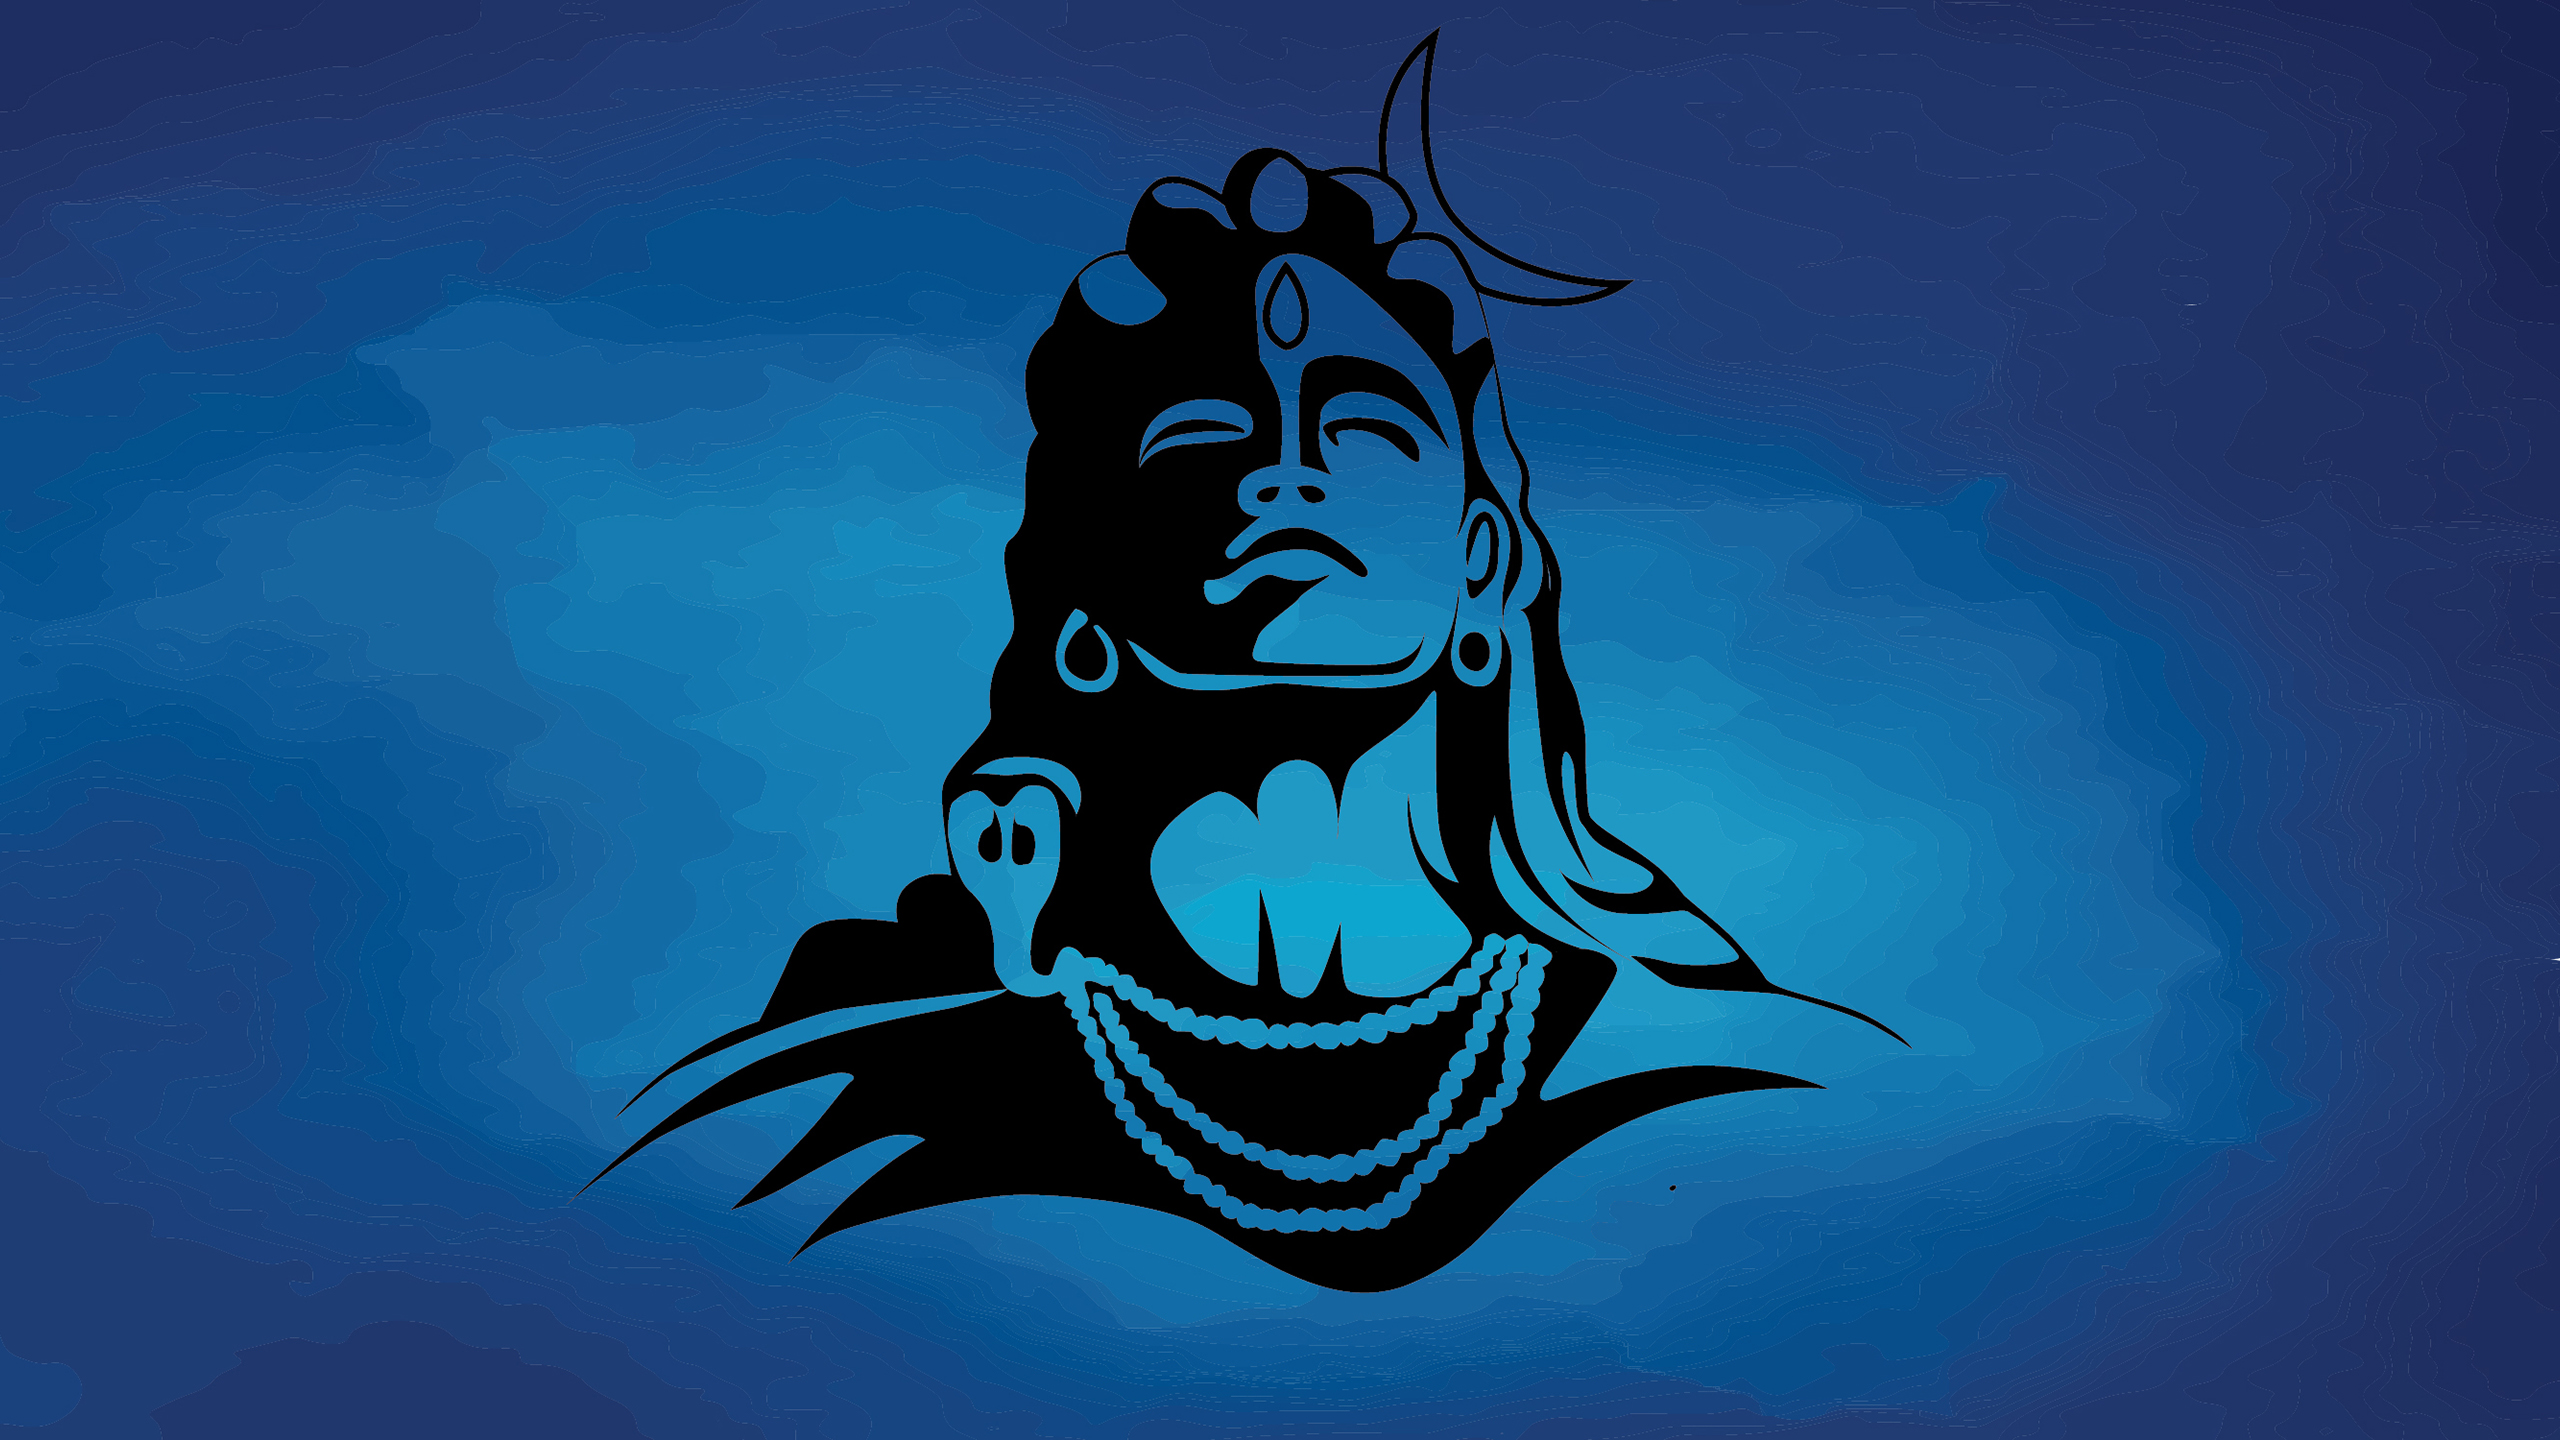 lord shiva wallpaper background 67542